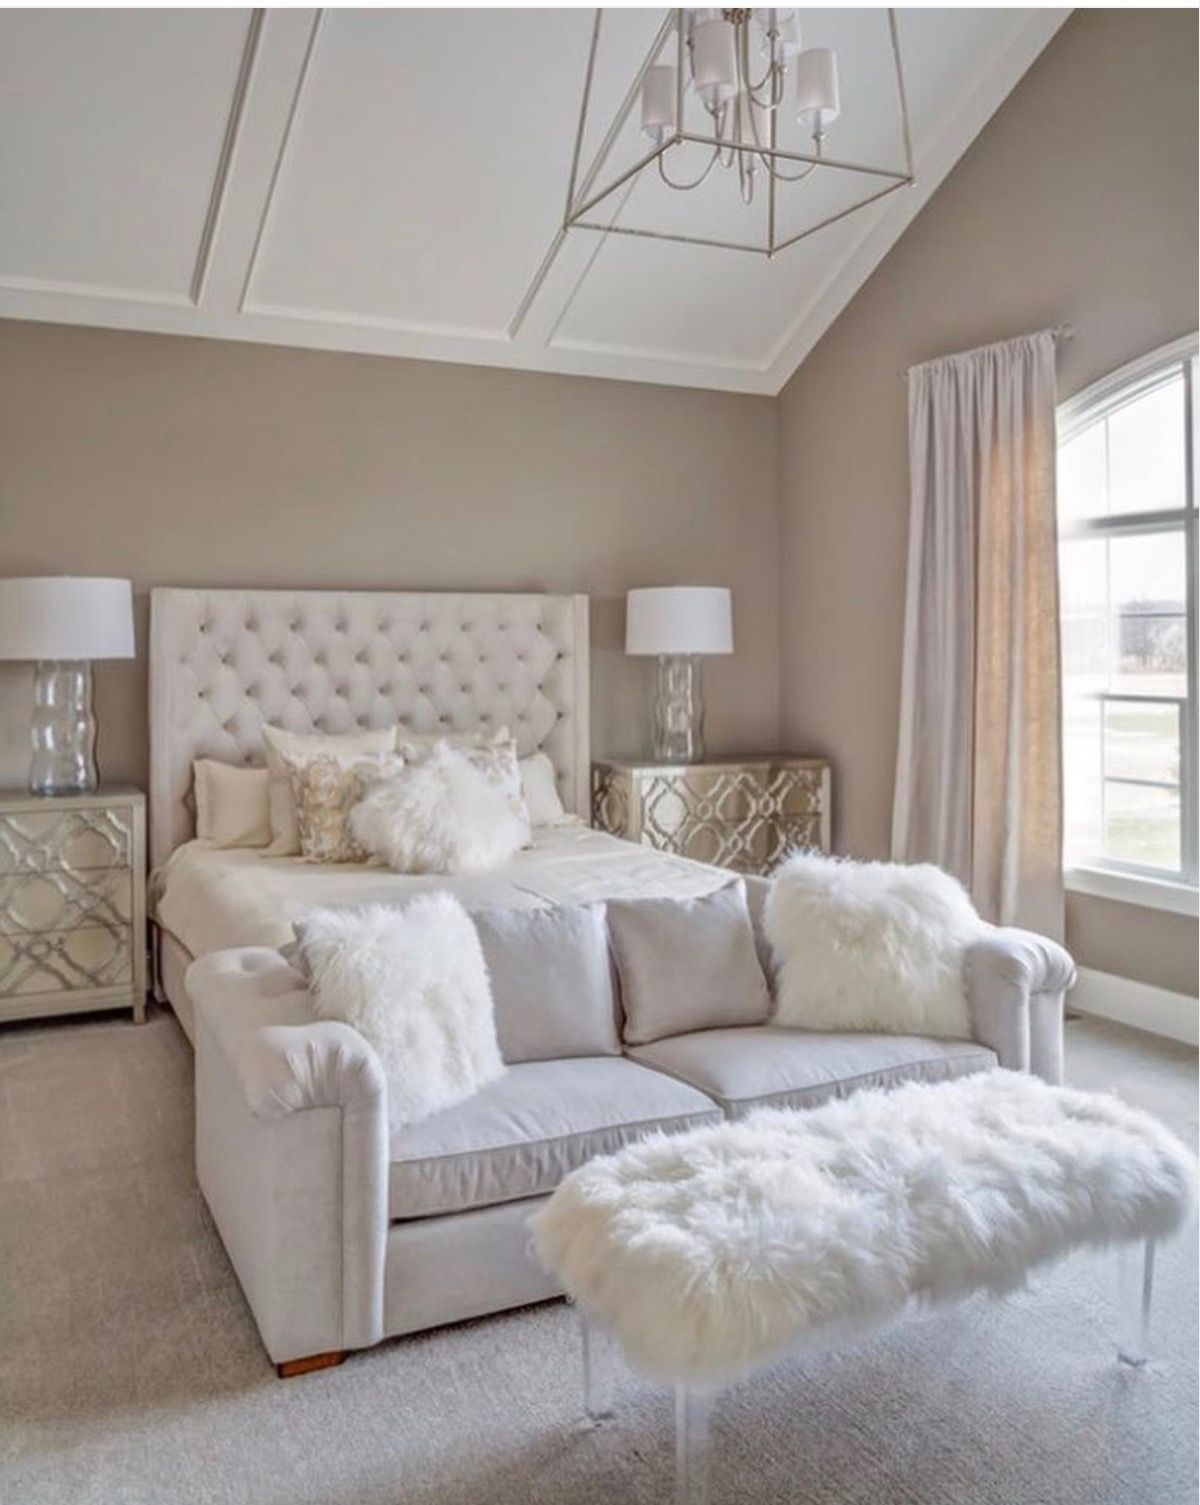 Tinteggiare Camera Da Letto pin by kelly mcgreevey on bedroom ideas* (with images